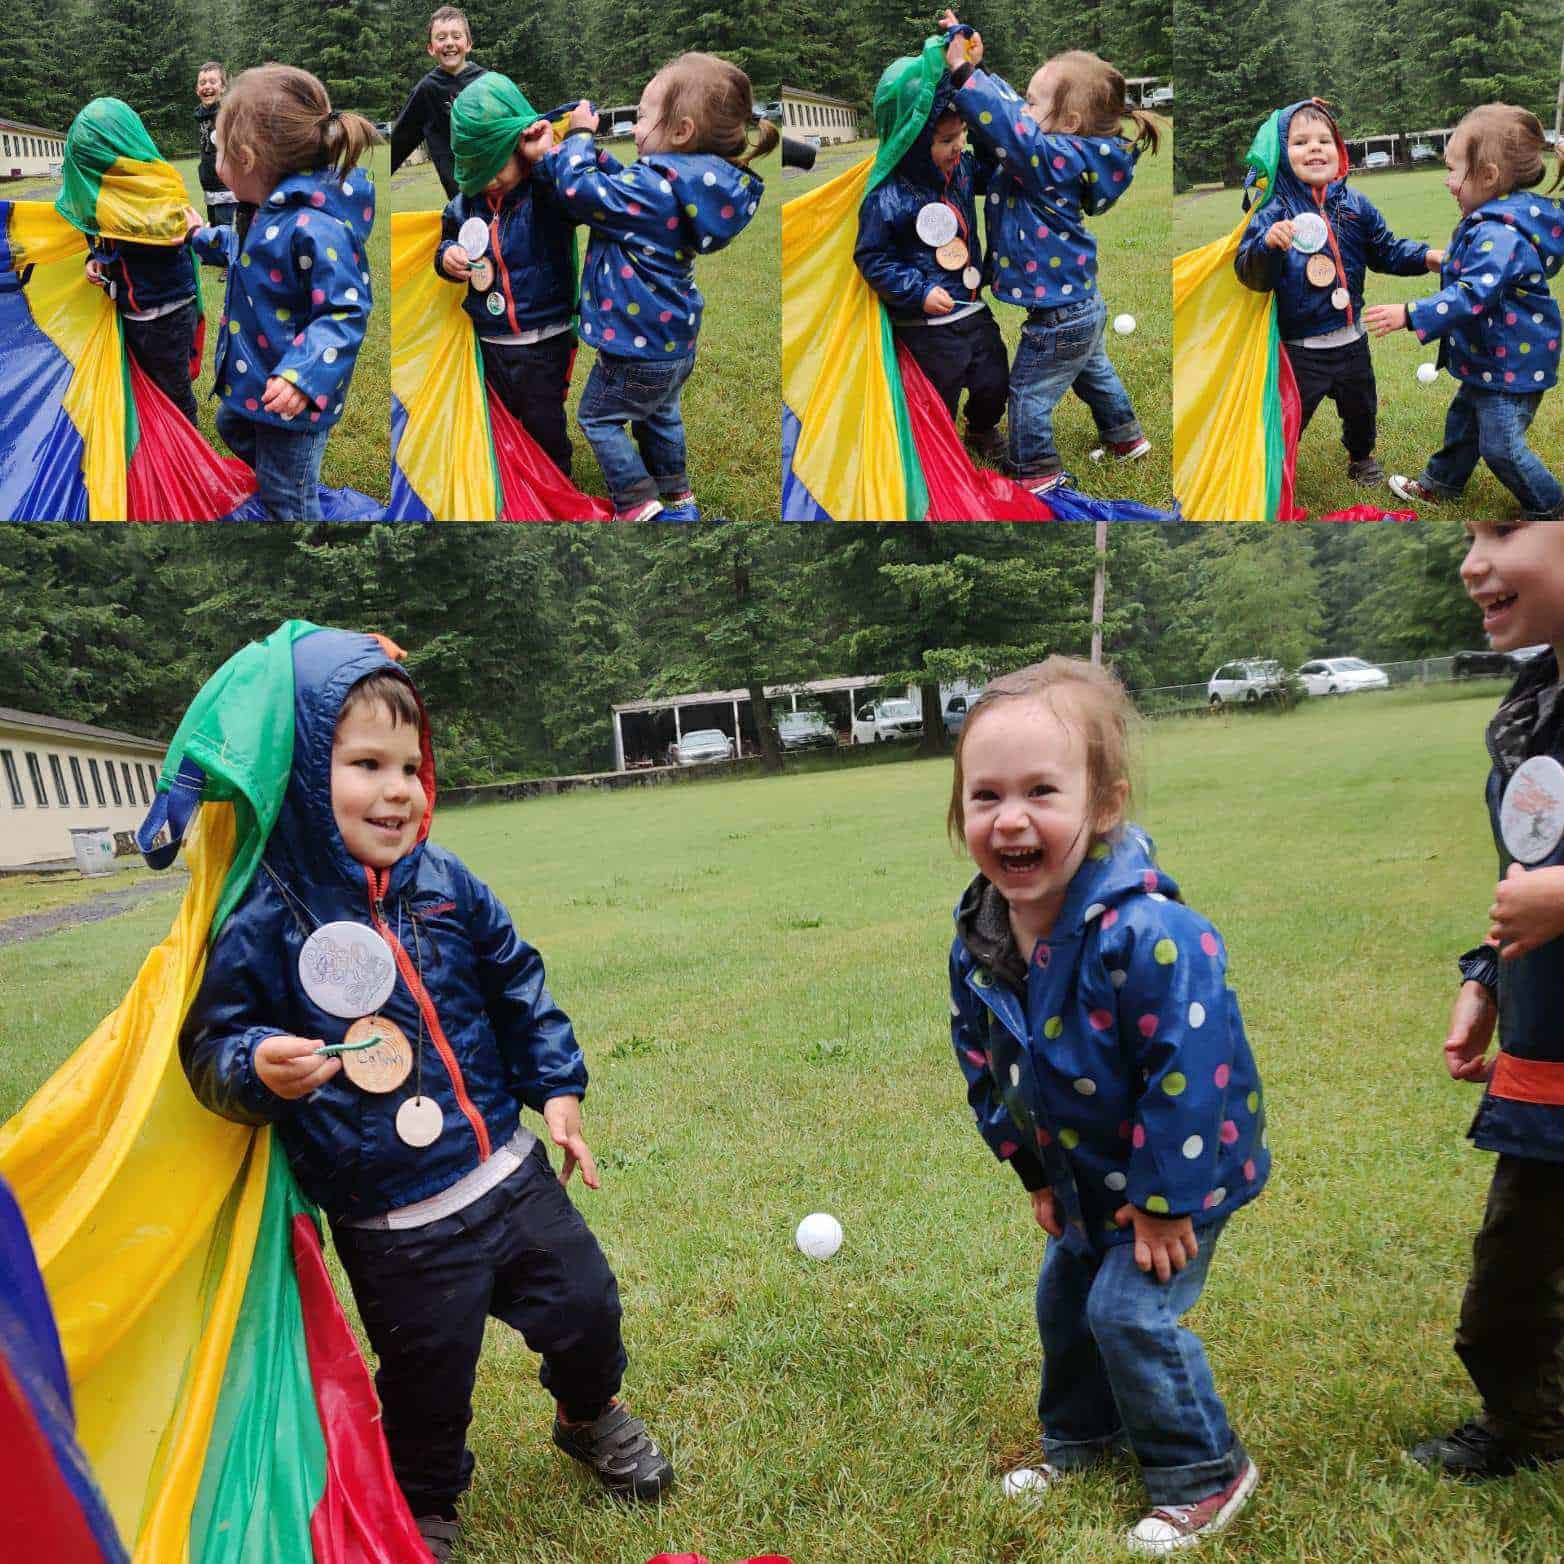 Nature Days on June 20th: The Kids Had Fun During Our Camp Outdoor Event 1